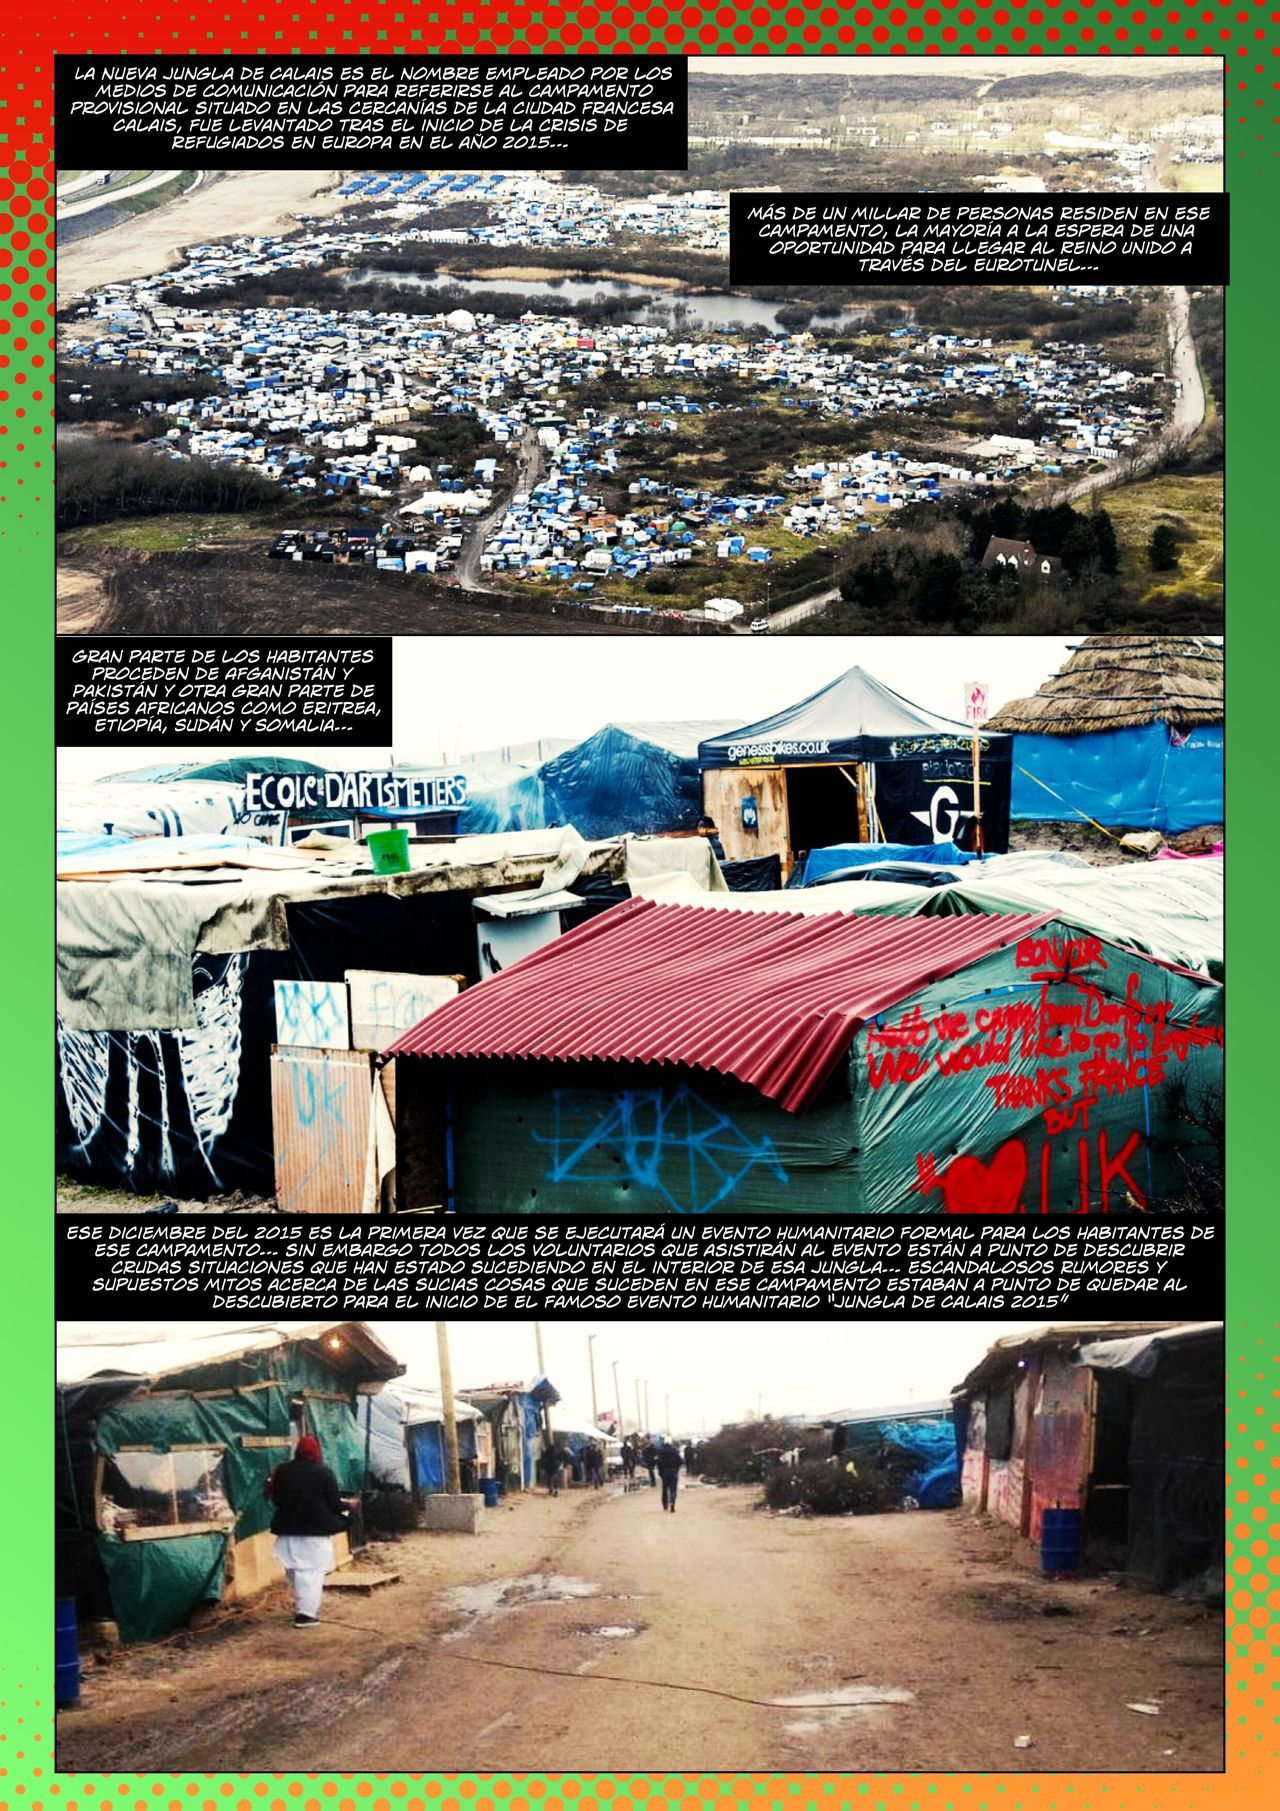 CHRISTMAS in The NEW JUNGLE Calais